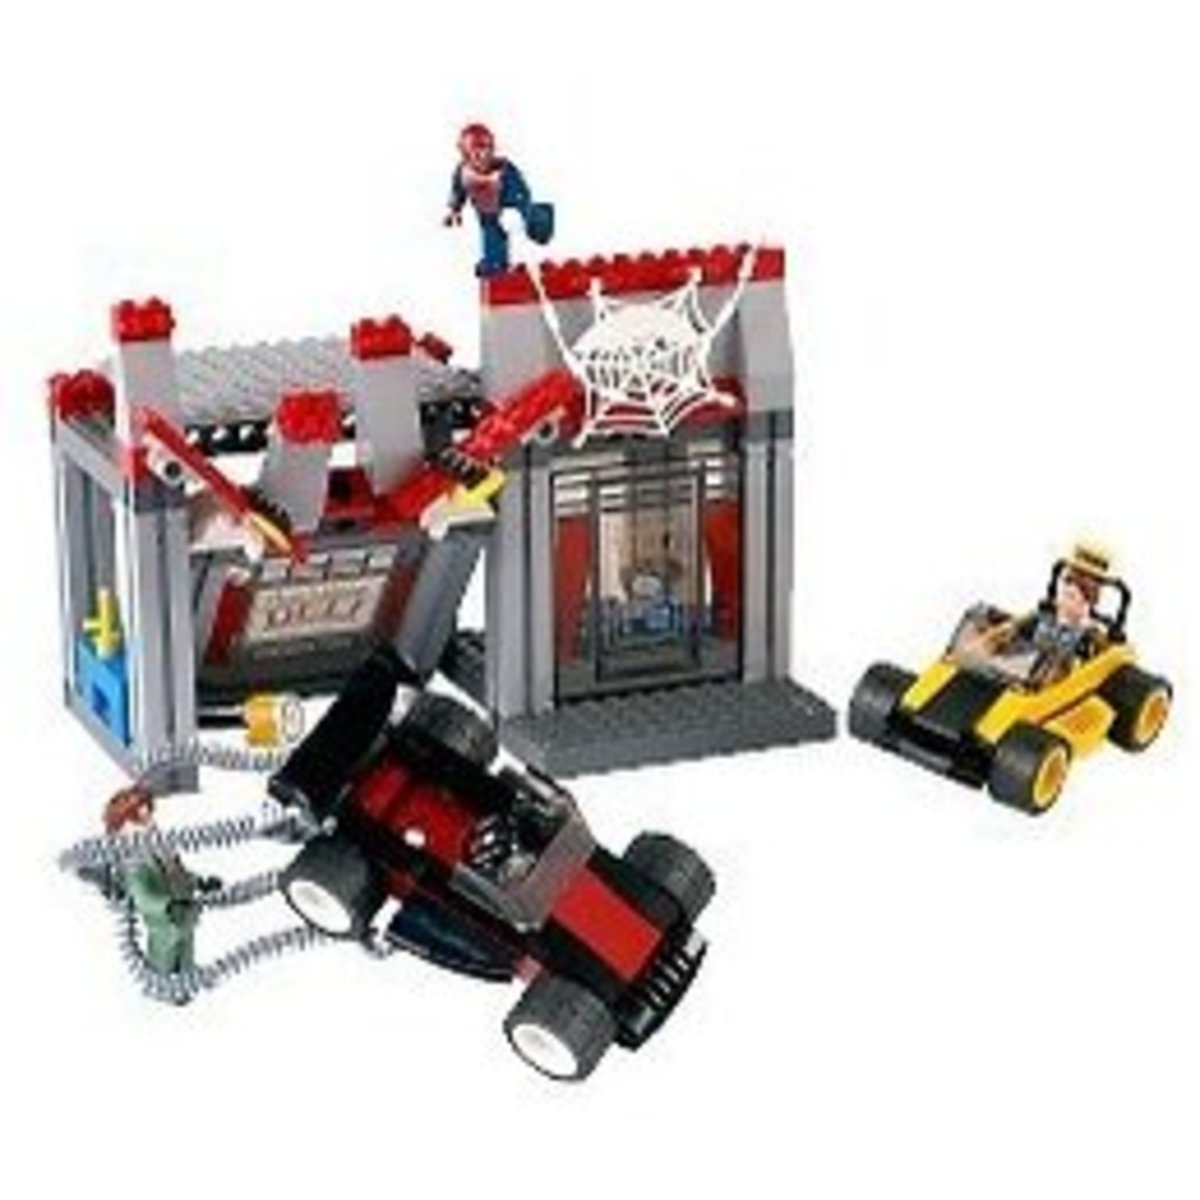 LEGO Spider-Man Doc Ock's Cafe Attack 4860 Assembled